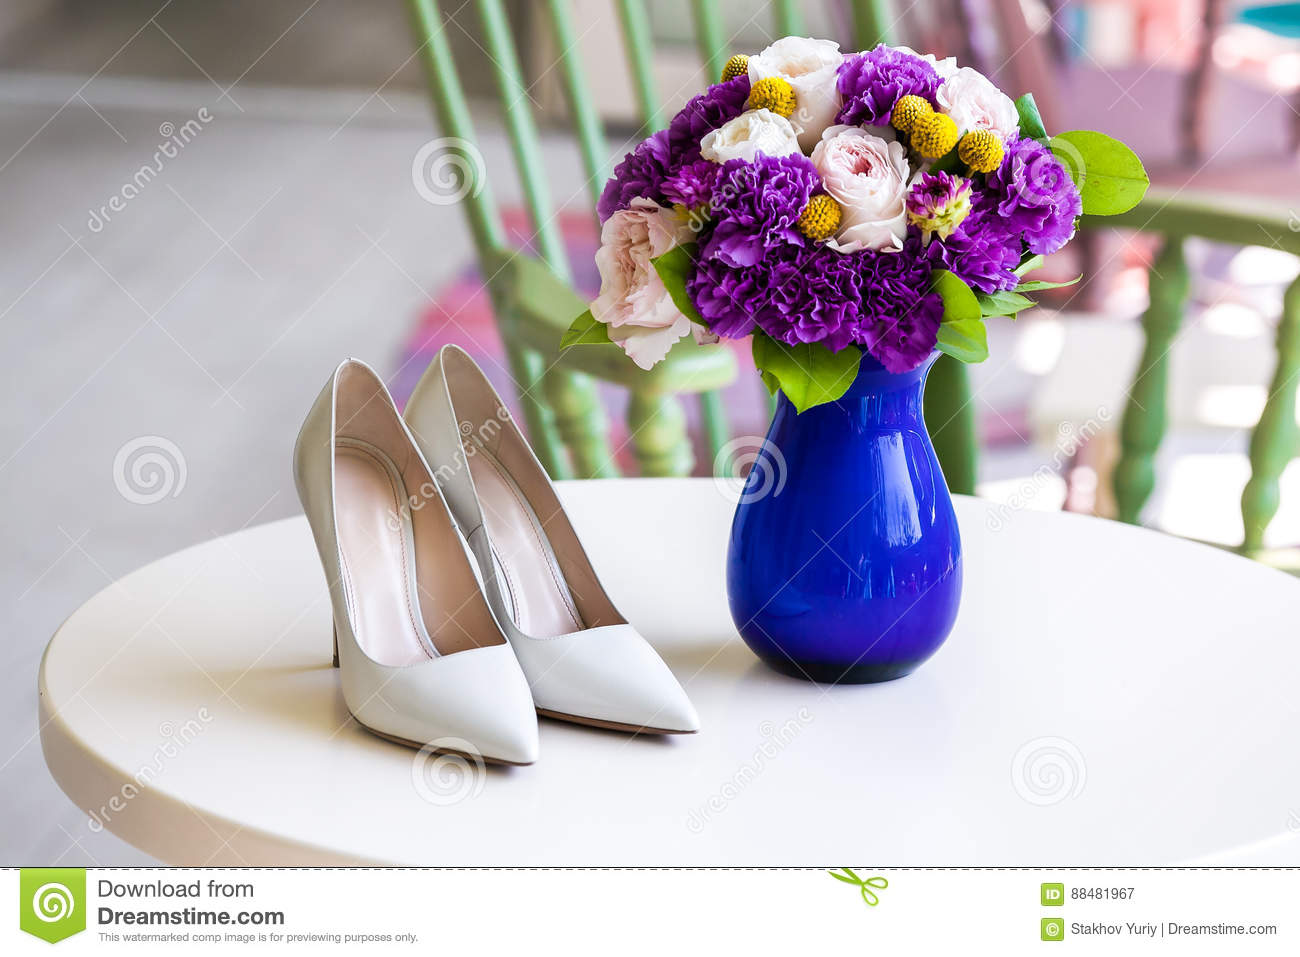 Wedding Bouquet Of Pink And Purple Flowers And Shoes Stock Image